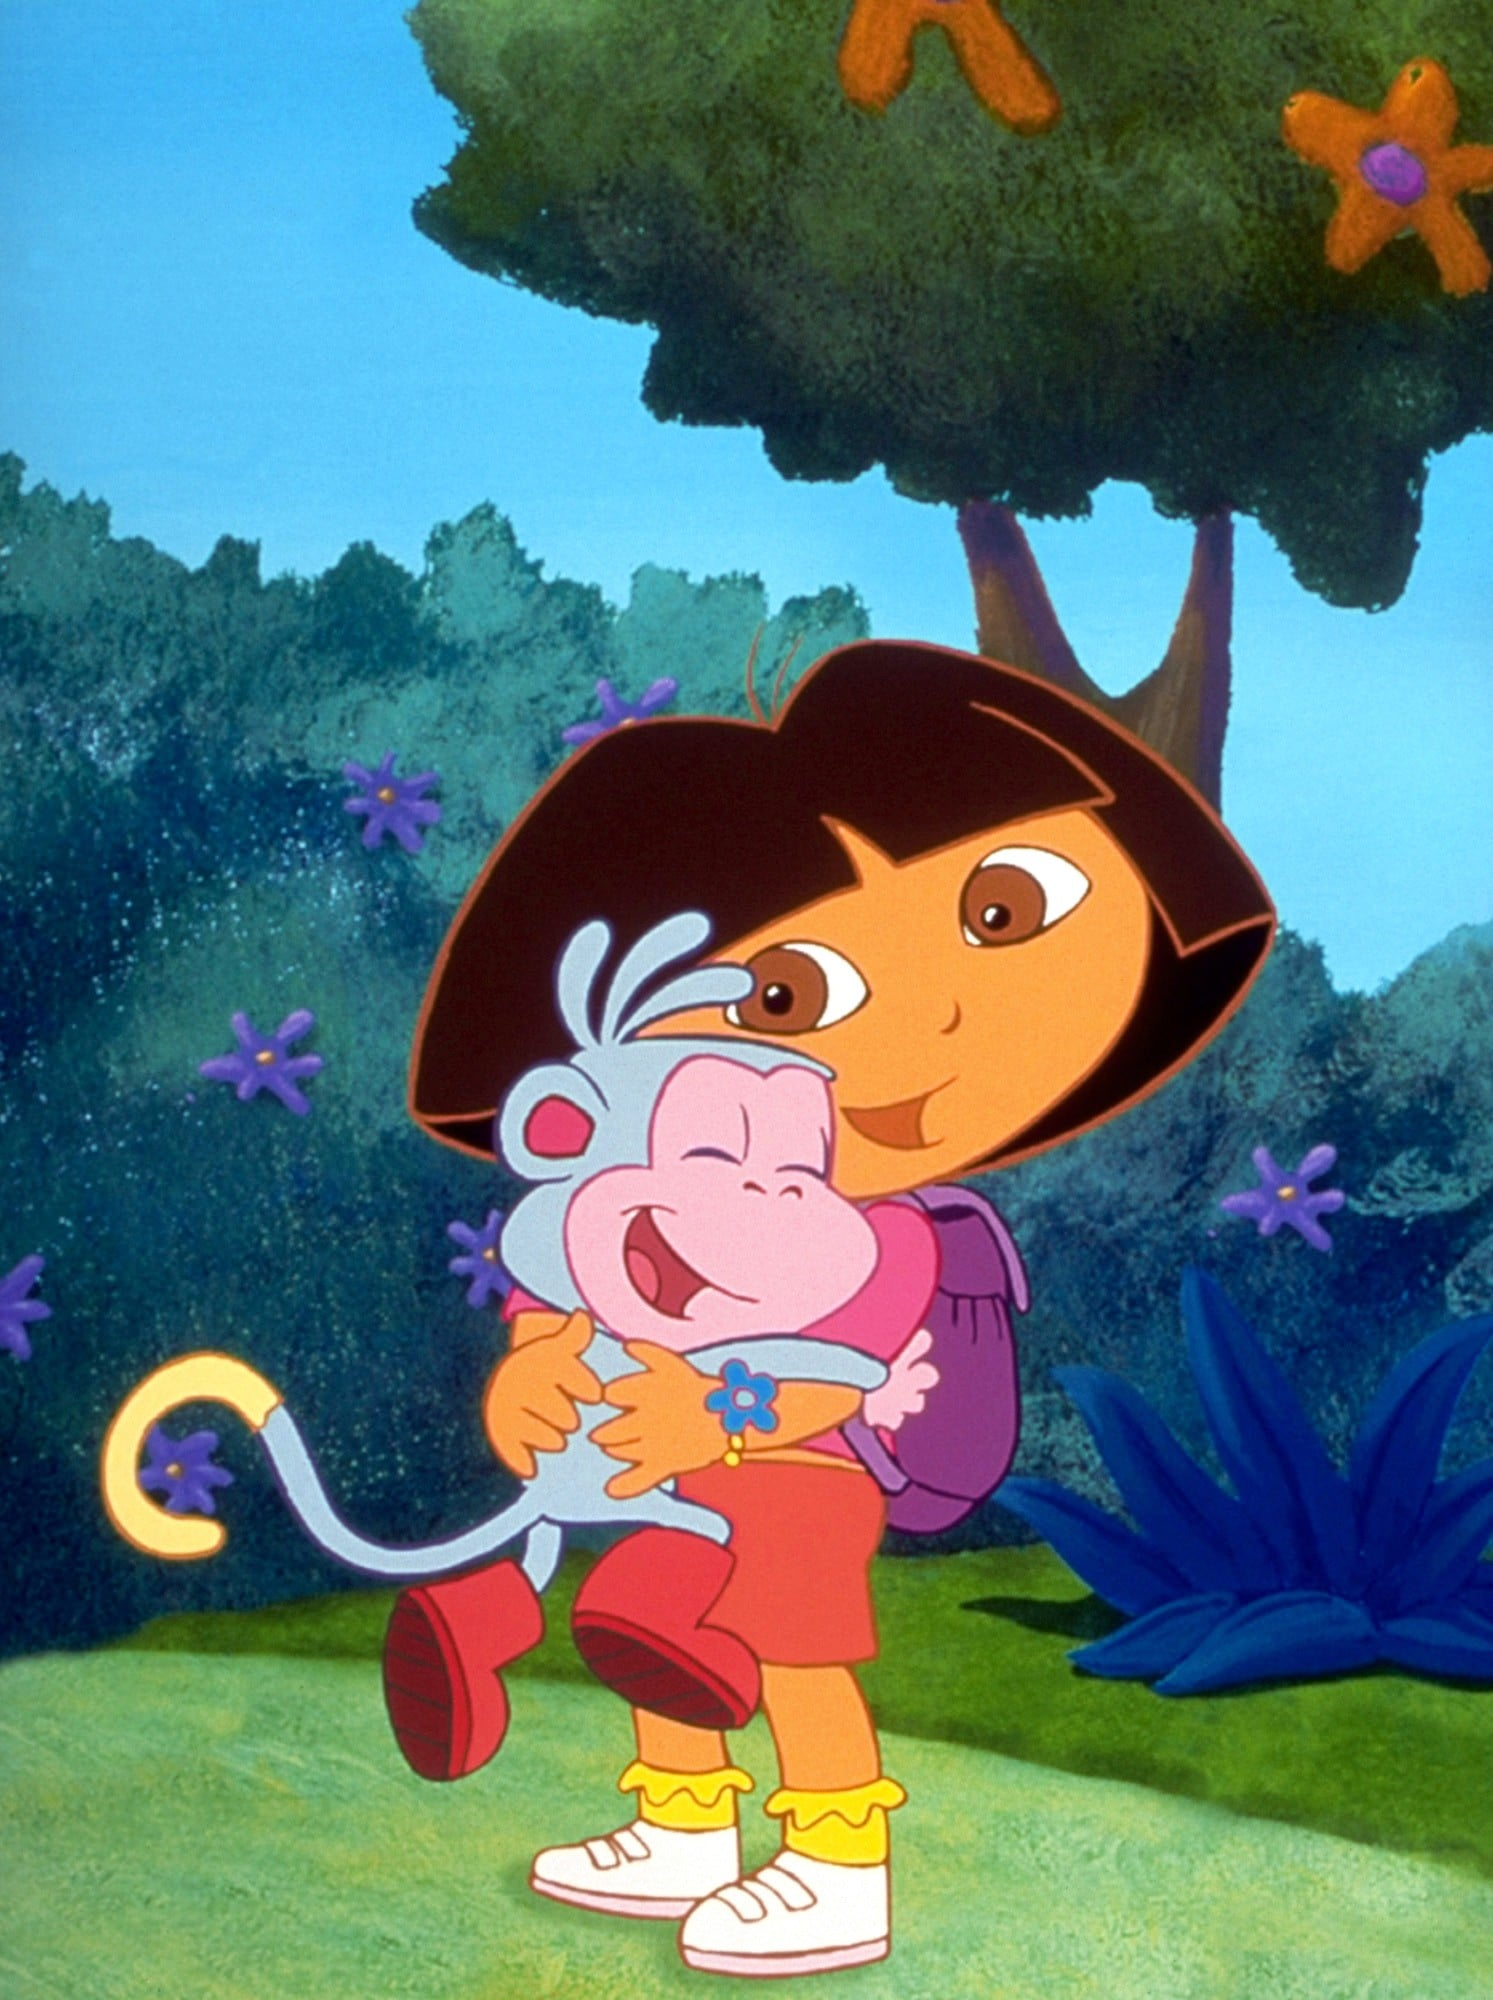 Boots and Dora From Dora the Explorer